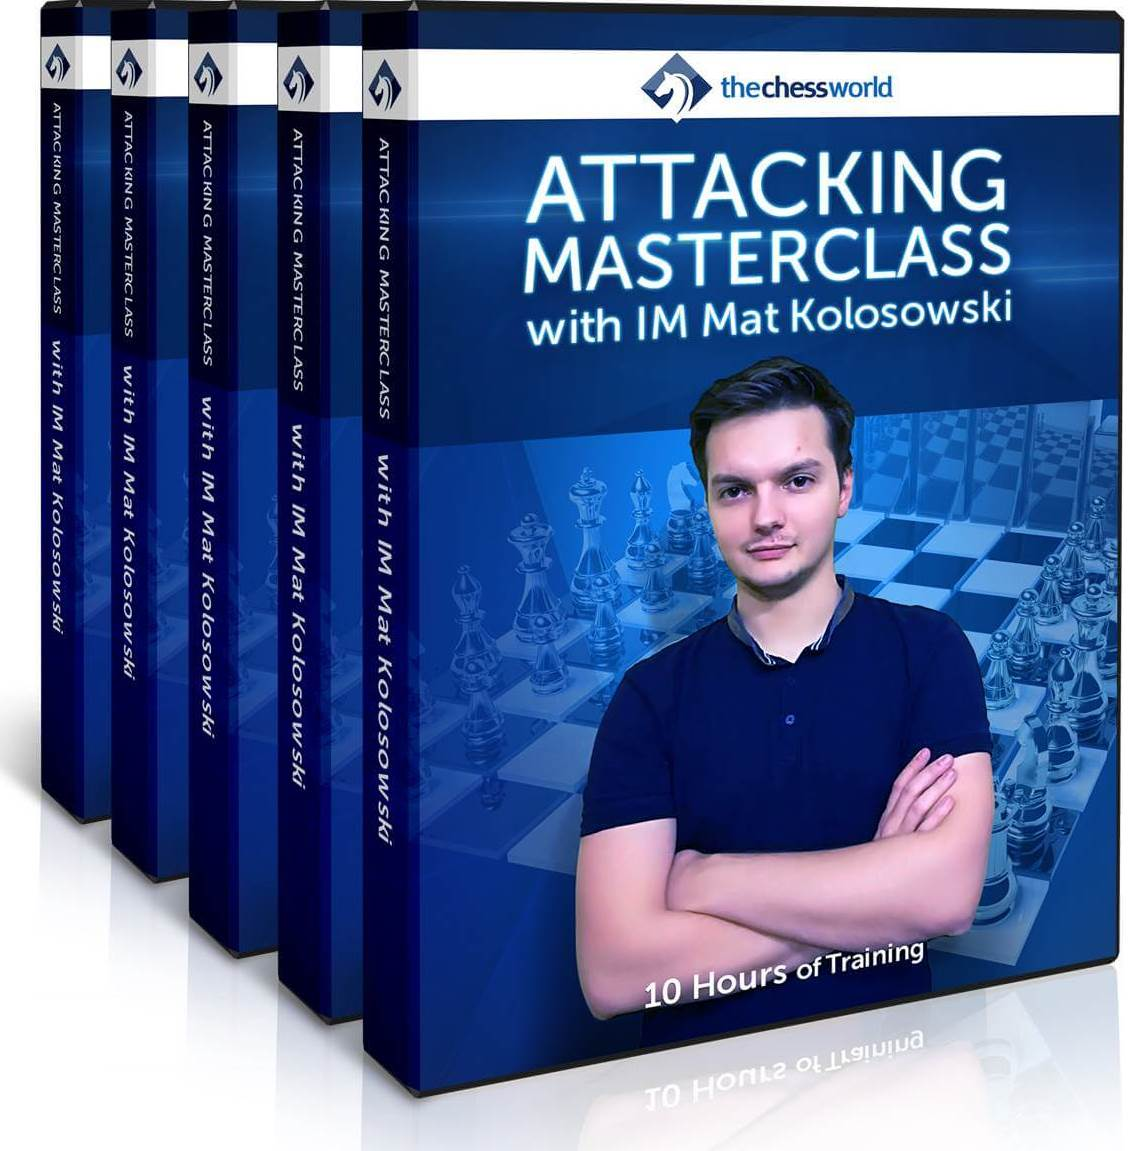 ATTACKING Masterclass with IM Mat Kolosowski Attacking-masterclass